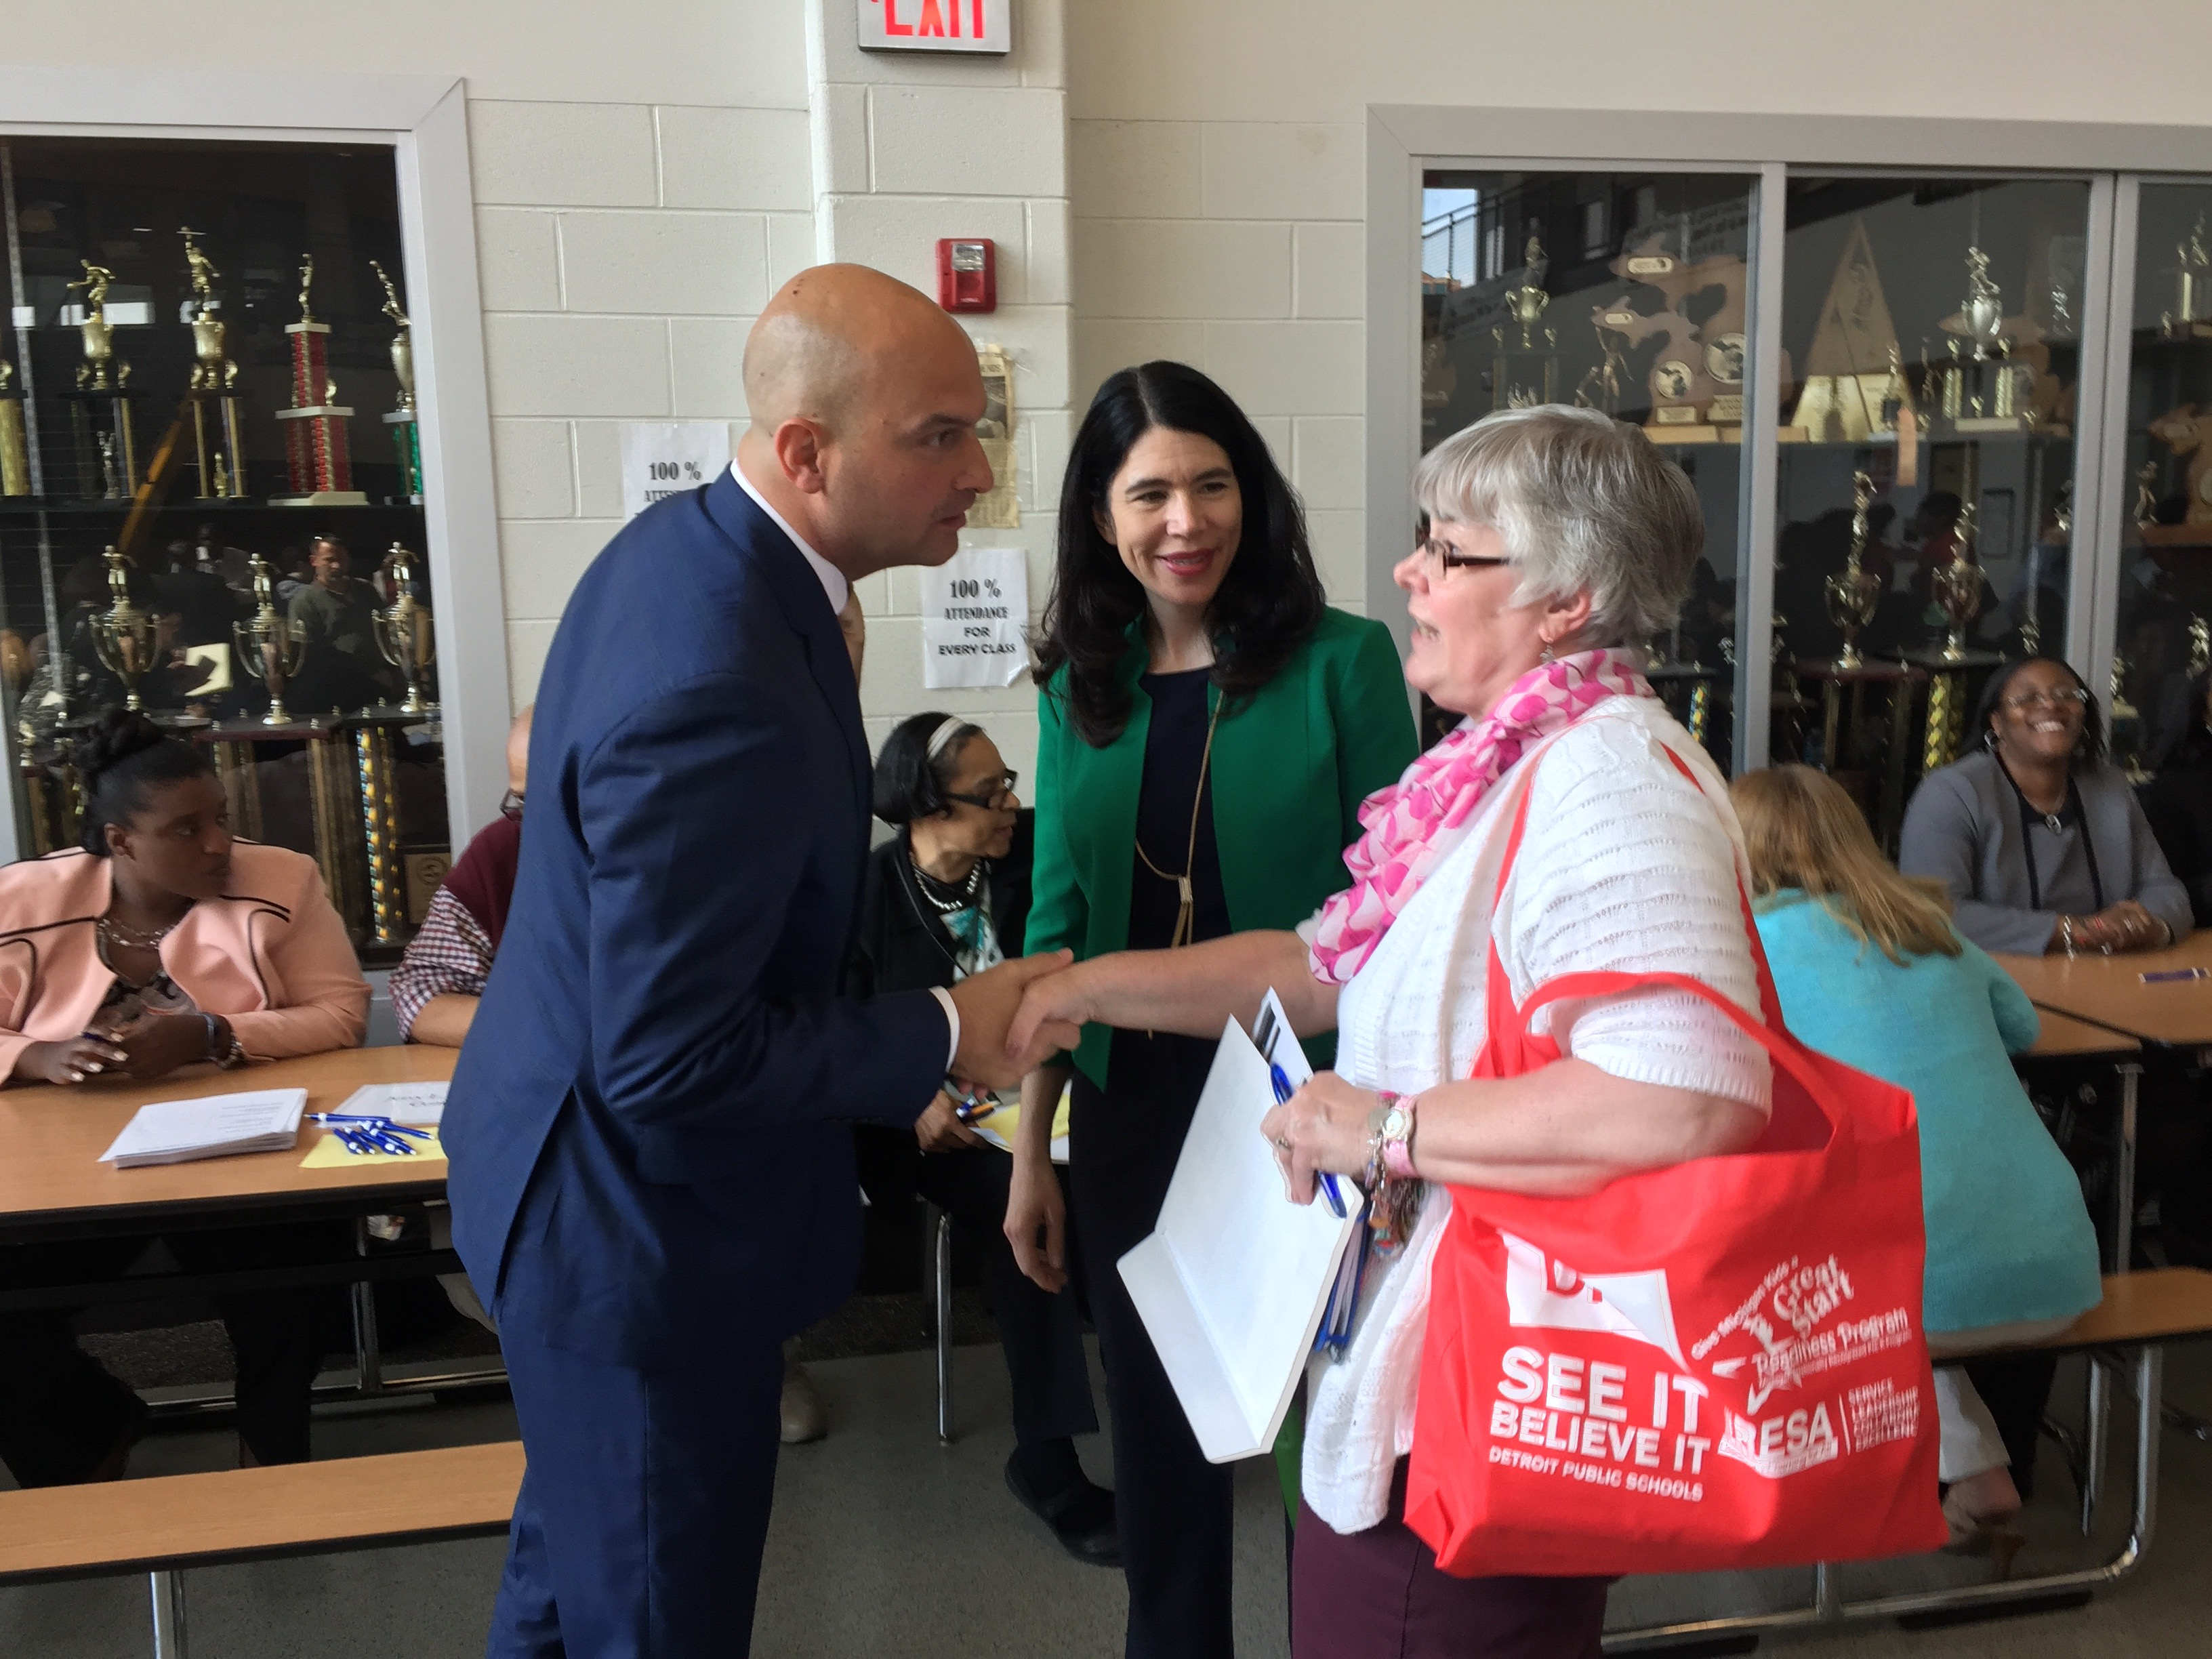 Detroit superintendent Nikolai Vitti named his first deputy, former Interim Superintendent Alycia Meriweather, center. She introduced Vitti in May as he met with principals and applicants at a job fair.